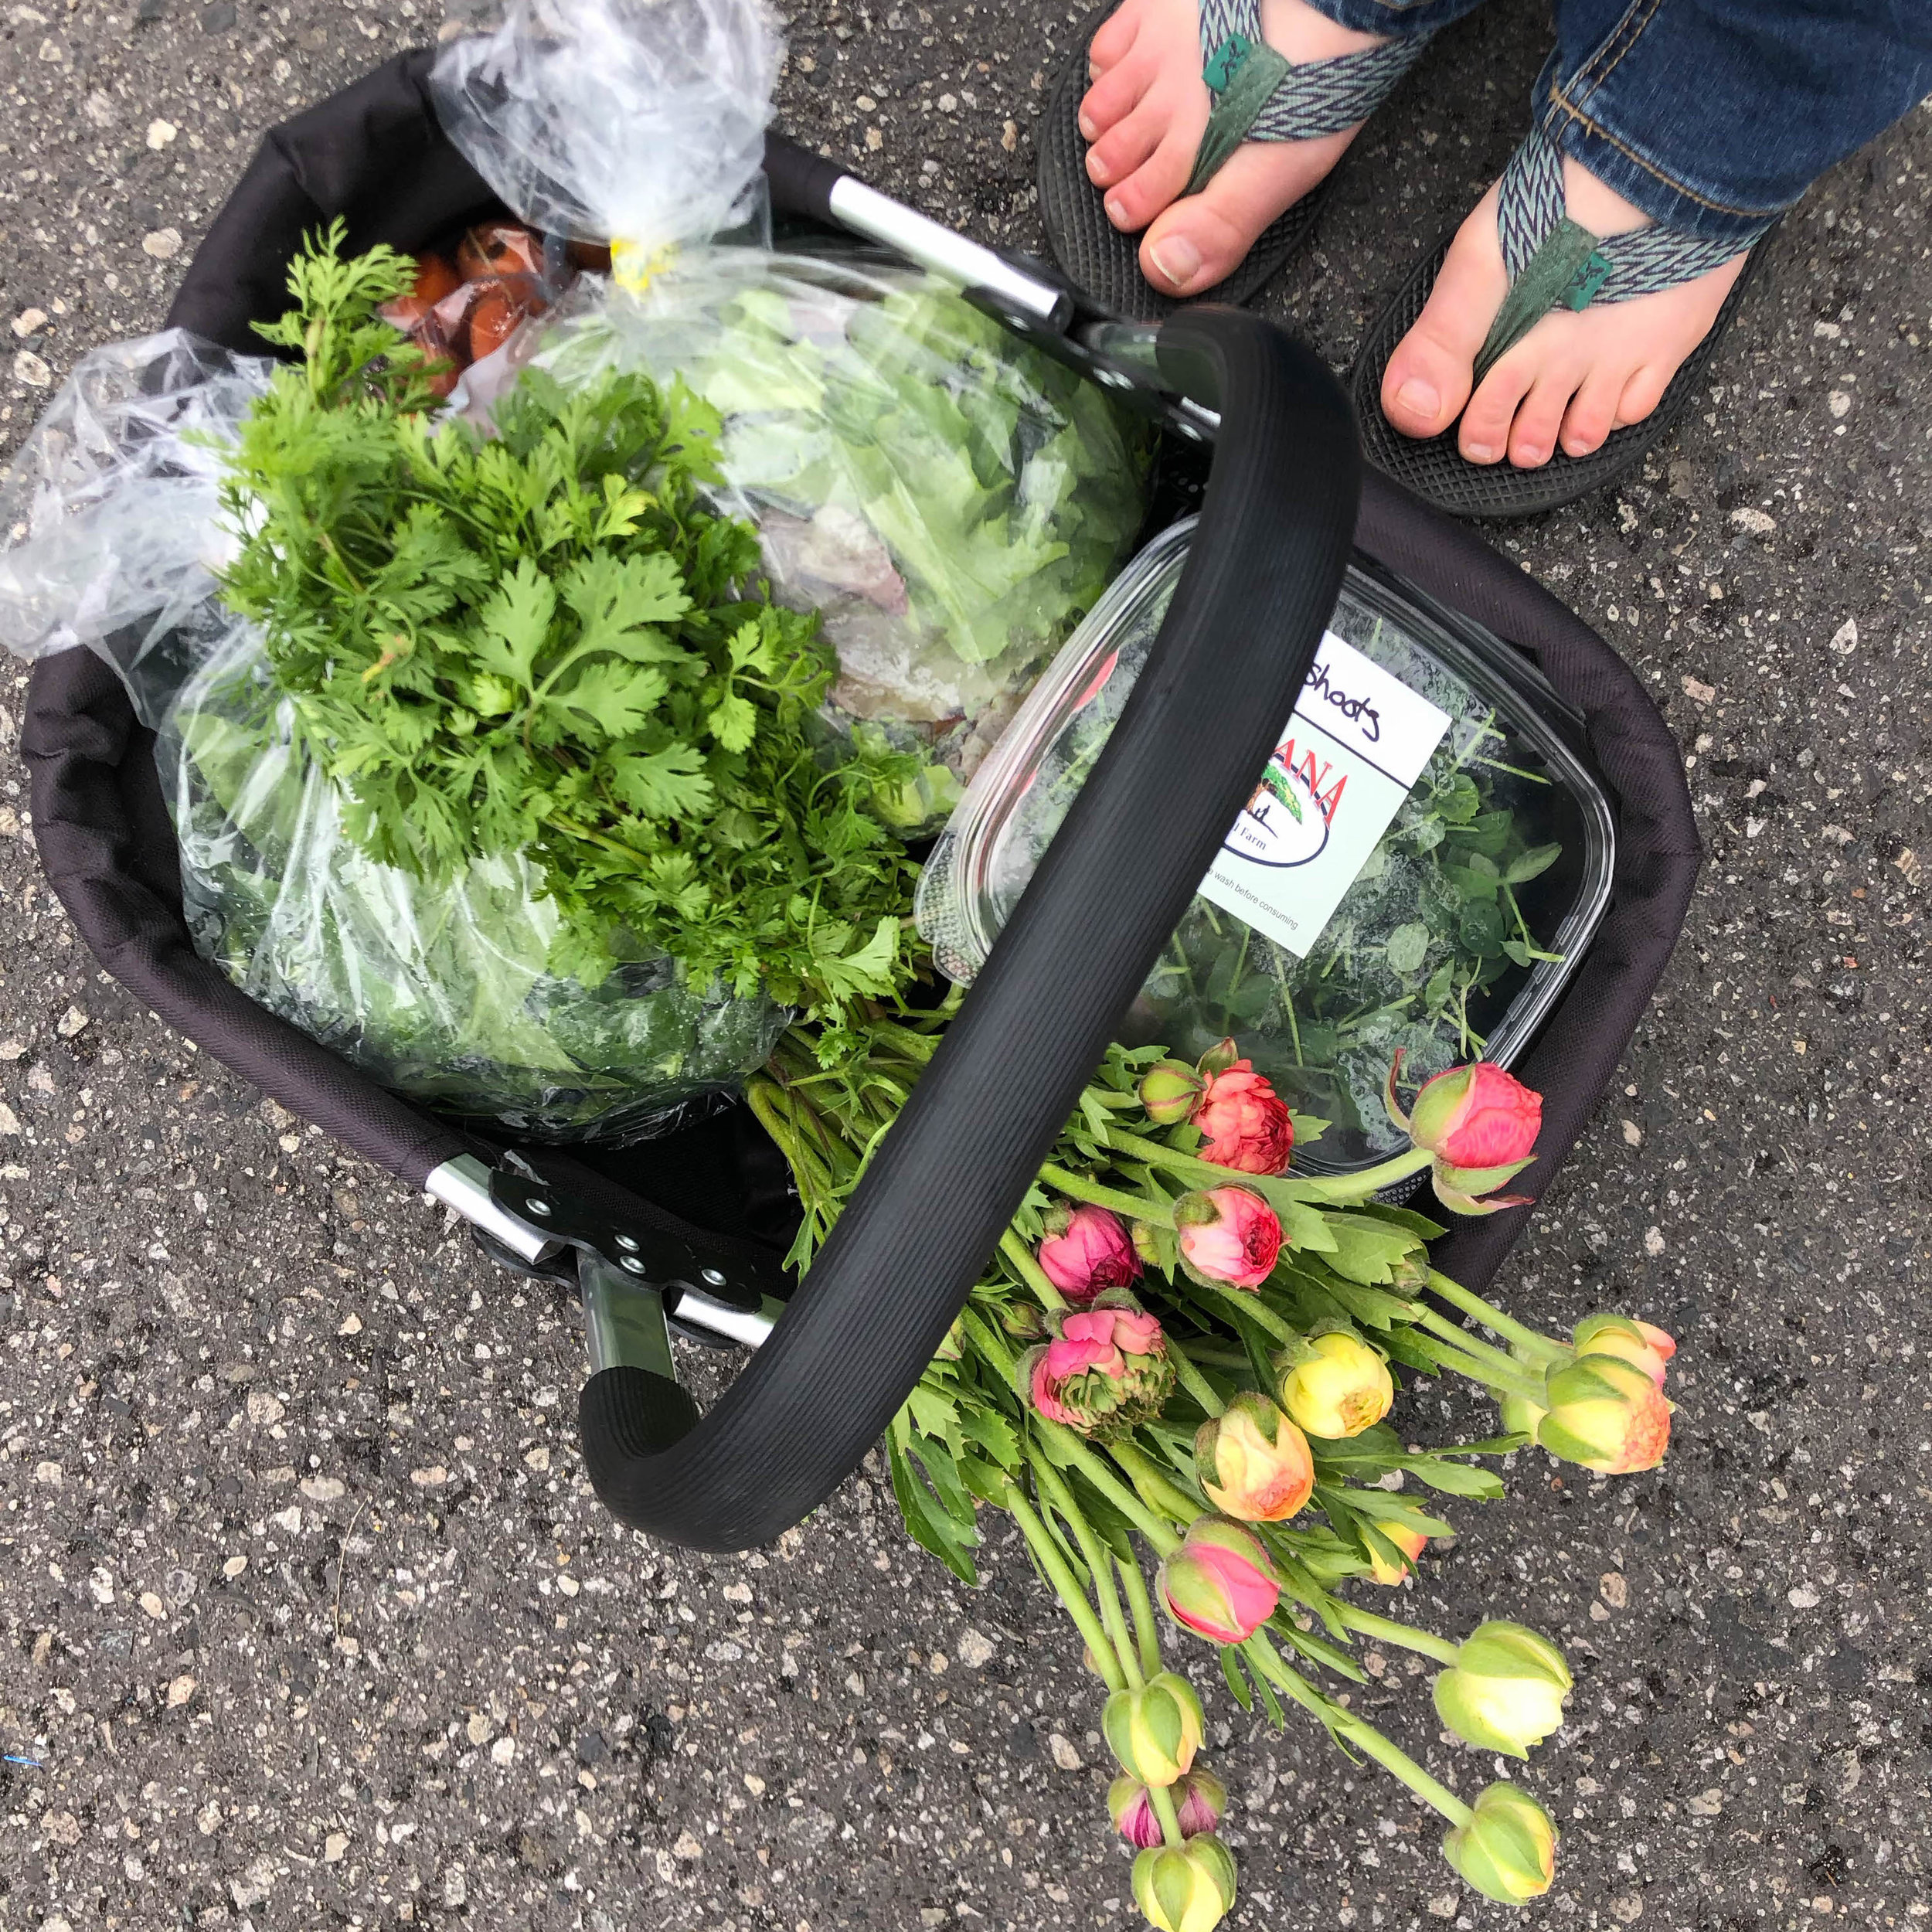 4.14.18 Market 2 - Salad Mix, Spinach, Ranunculus Fiddler's Green Farm. Pea Shoots Ohana No Till Farm. Over-Wintered Carrots Holy Green Gardens. Cilantro Purple Sage Farms. Steak Triangle C Beef Ranch. Bone in Chicken Breast Matthews Family Farm.